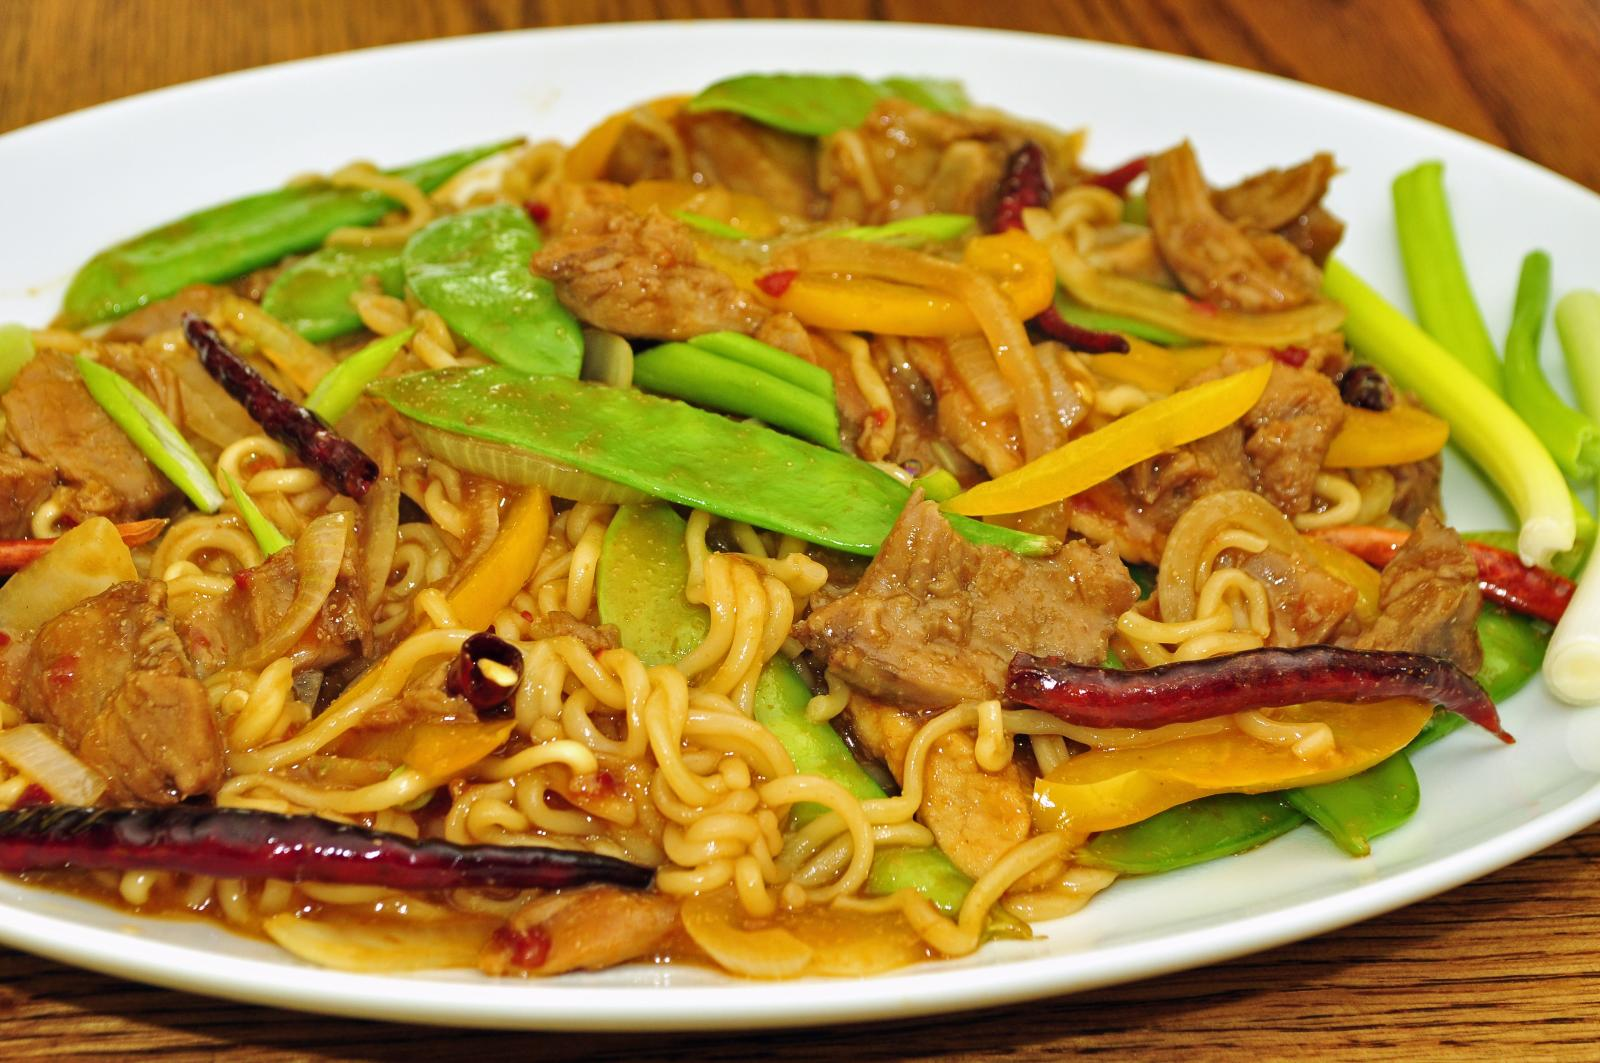 File:Spicy pork noodles (5796447405) jpg - Wikimedia Commons